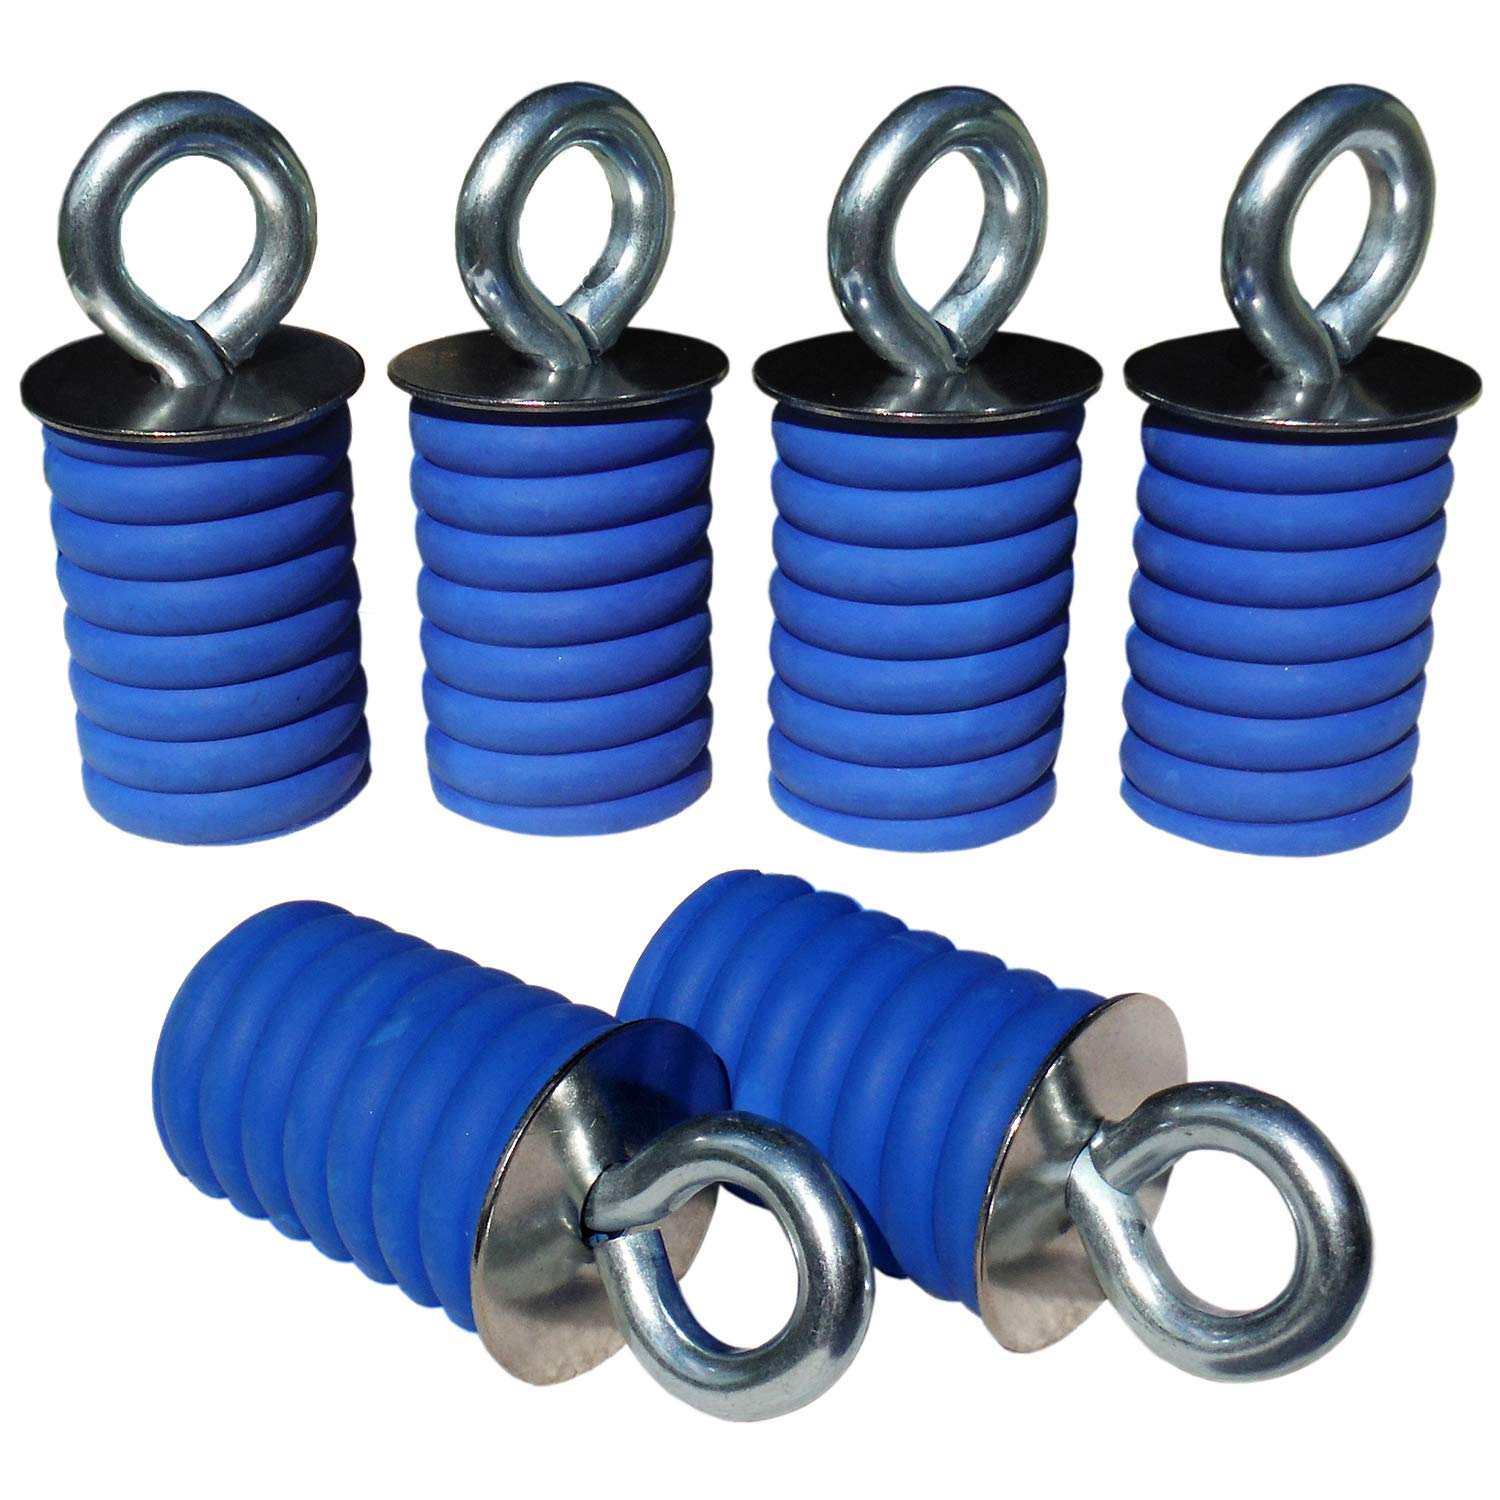 Polaris Ranger Lock & Ride ATV Tie Down Anchors - Set of 6 (SIX) Lock and Ride type Anchors by GripPRO ATV Anchors